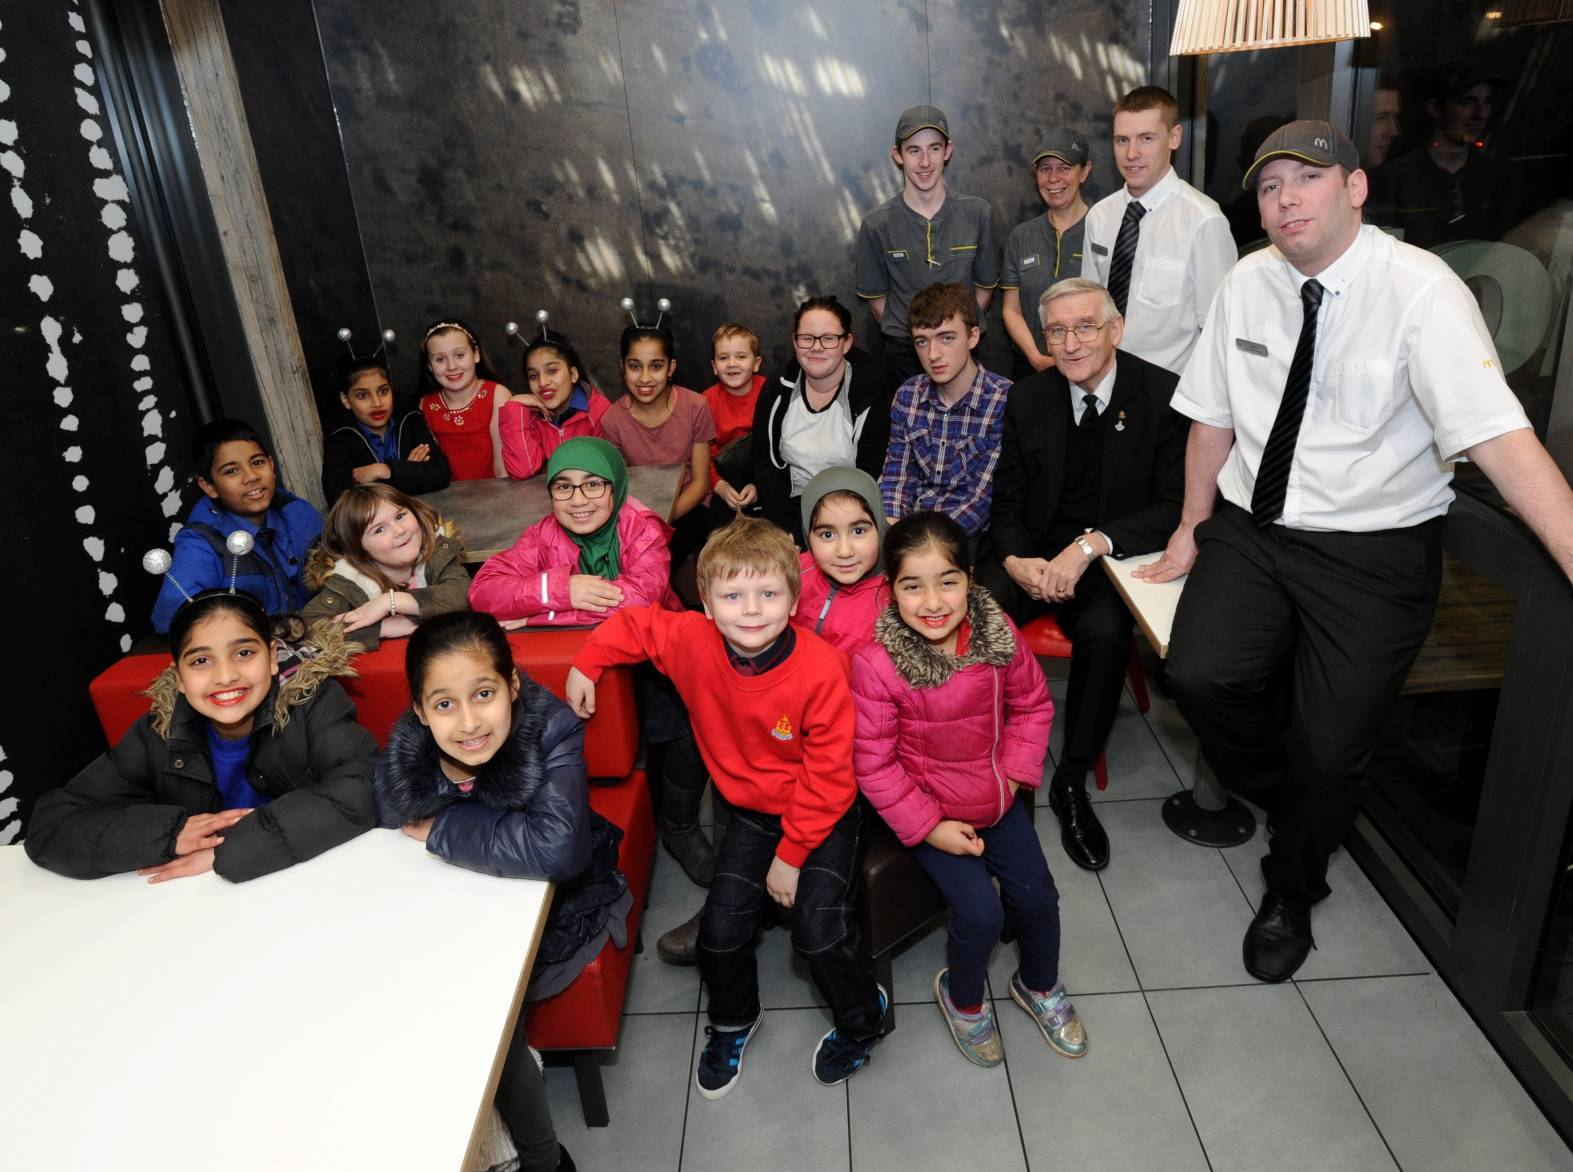 Kittybrewster Boys Brigade have been meeting in McDonald's